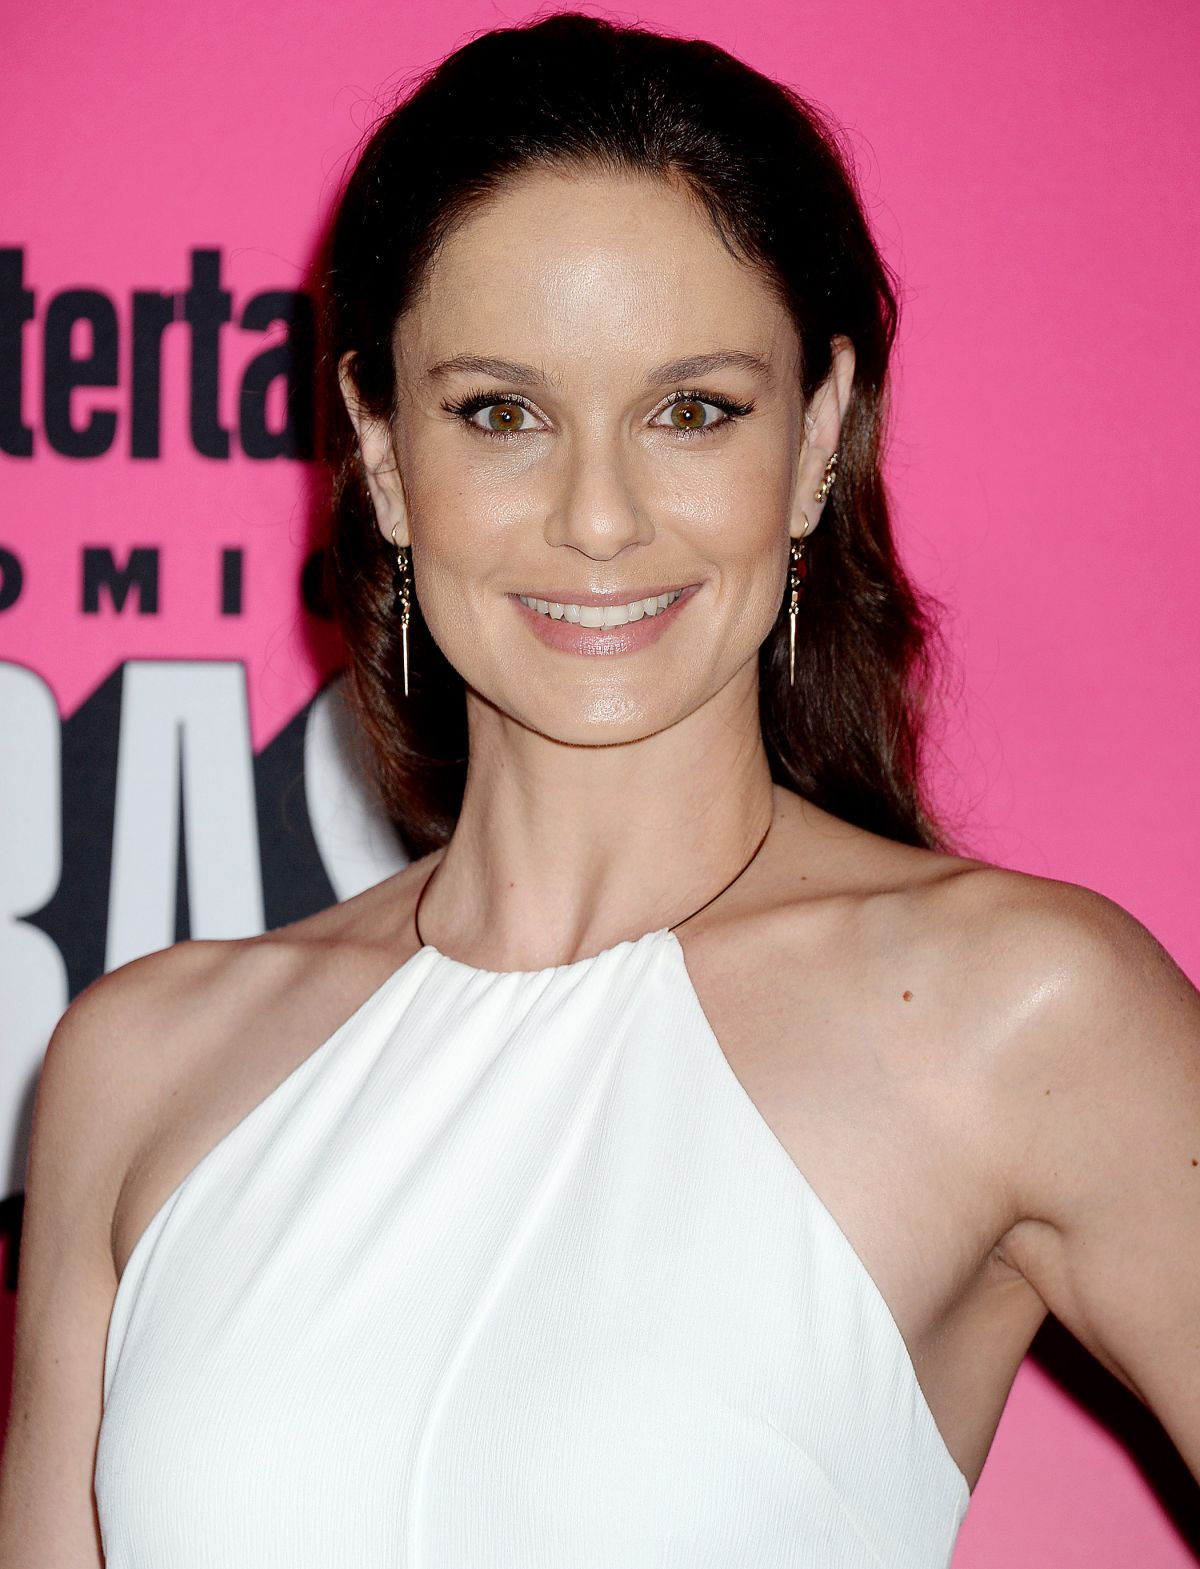 SARAH WAYNE CALLIES at Entertainment Weekly